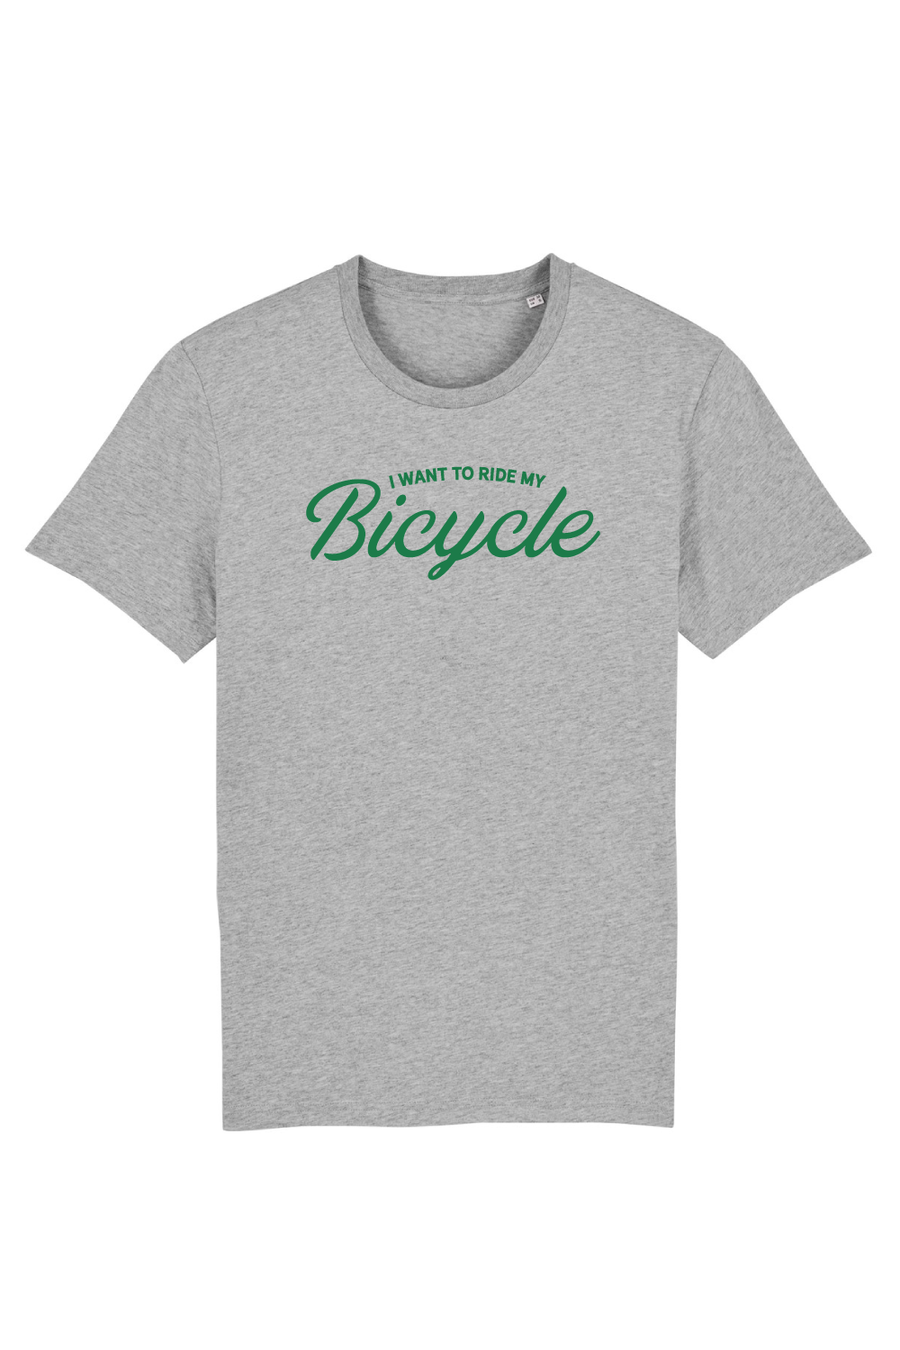 I want to ride my bicycle kids - Joh Clothing